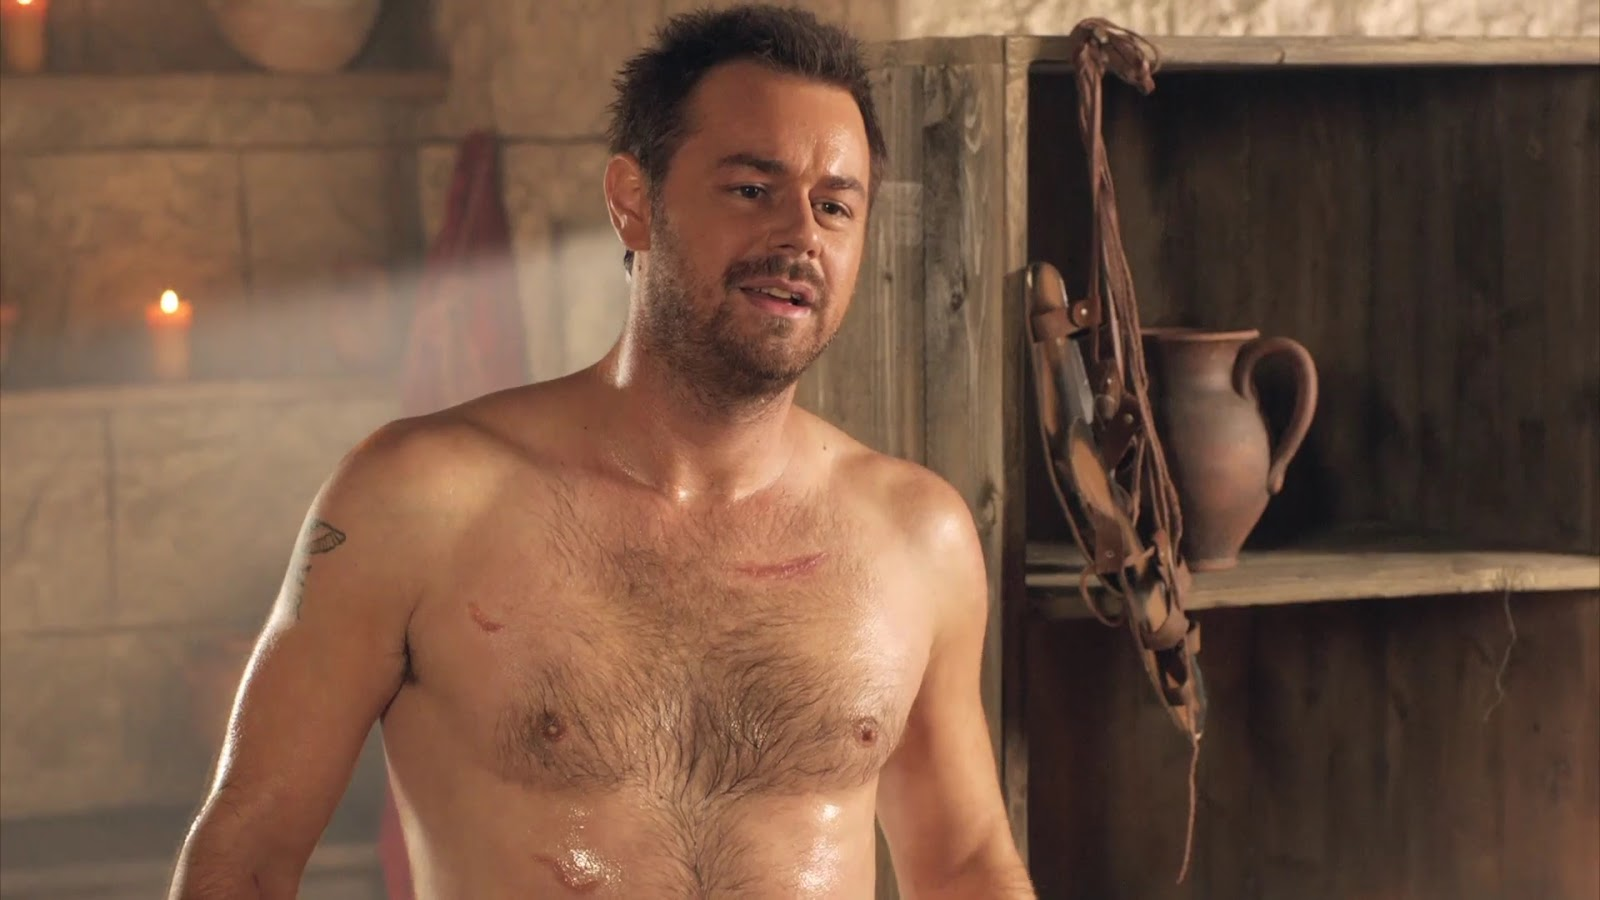 danny-dyer-masterbate-wedding-crashers-naked-boobs